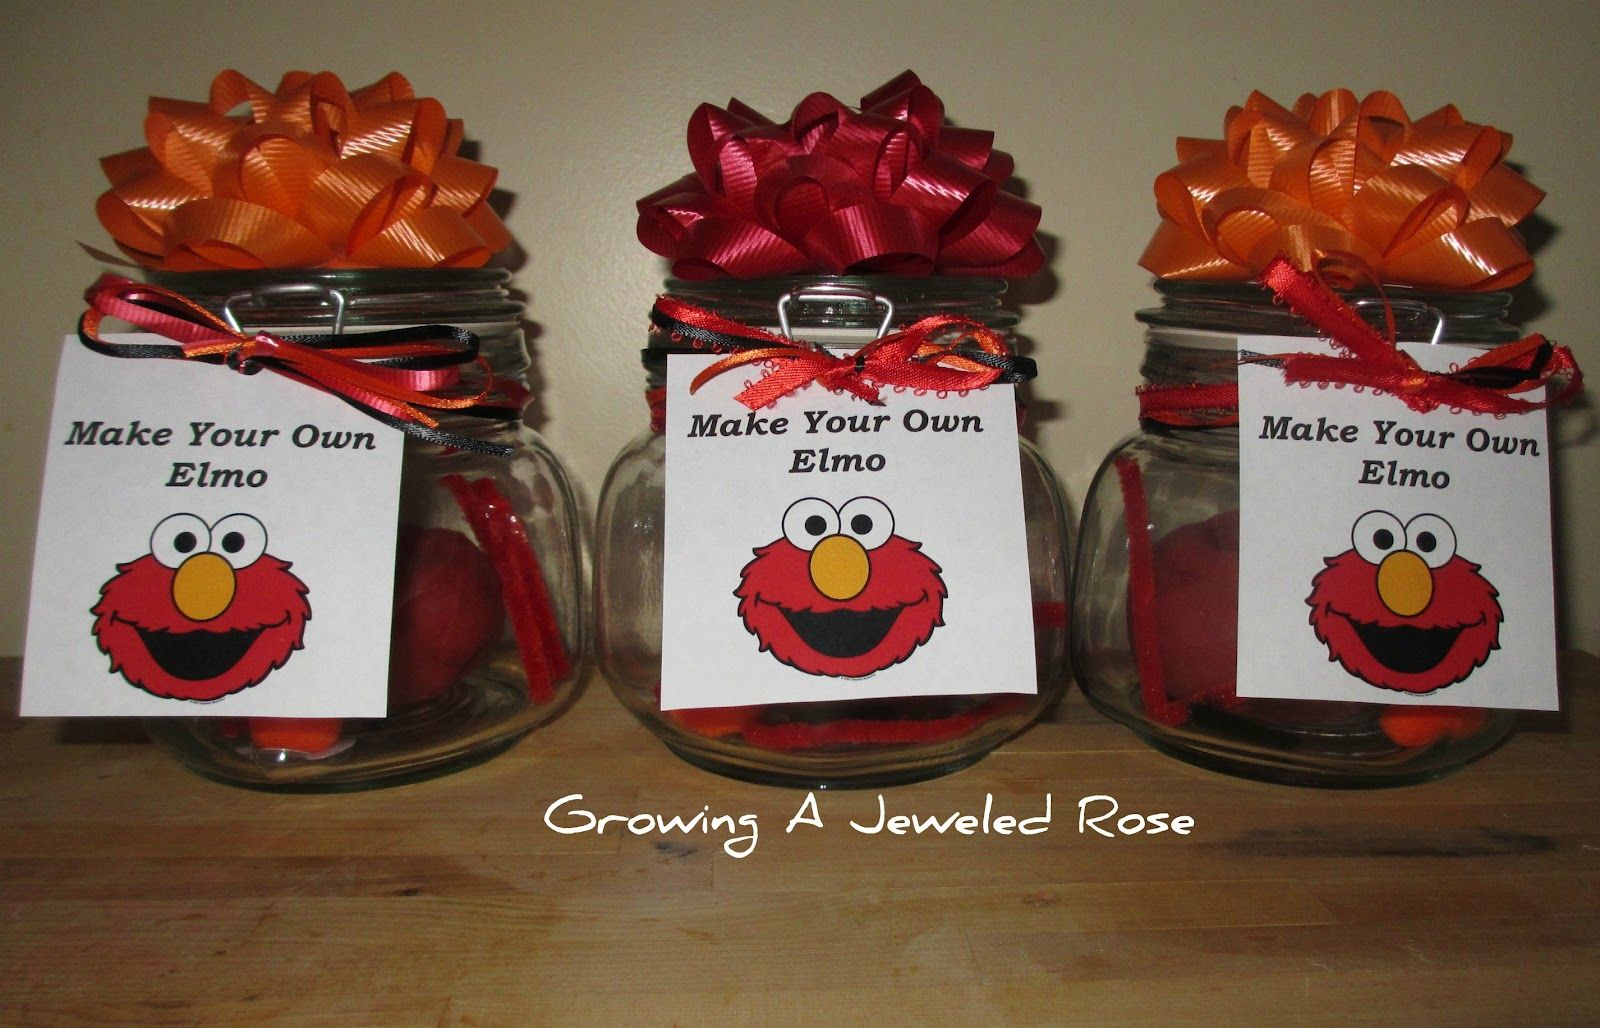 Make Your Own Elmo Homemade Party Favors Growing A Jeweled Rose